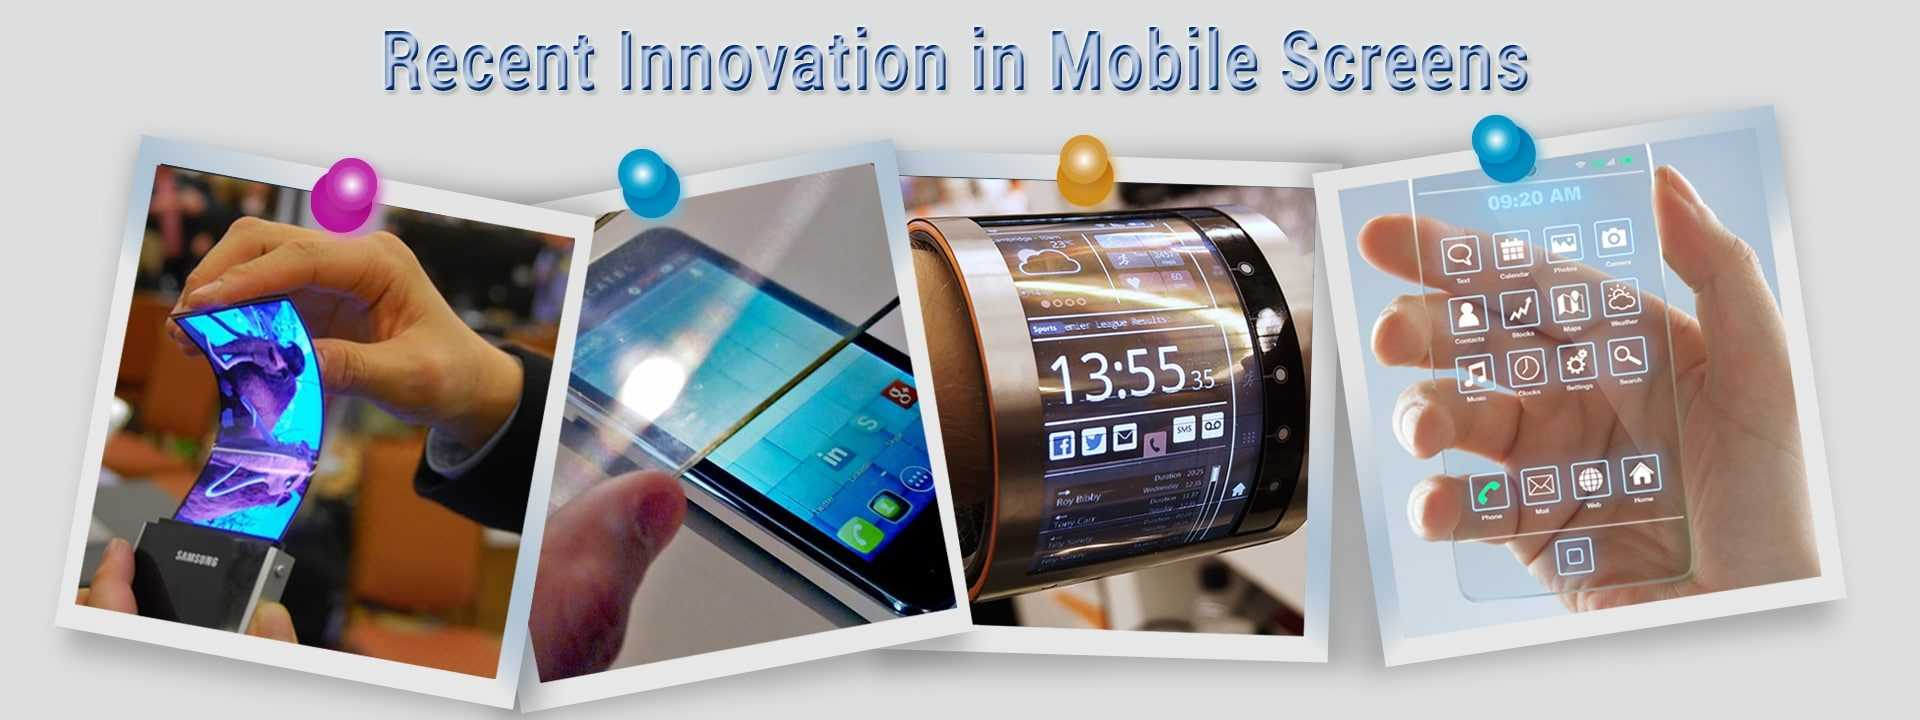 Recent innovation in mobile screens